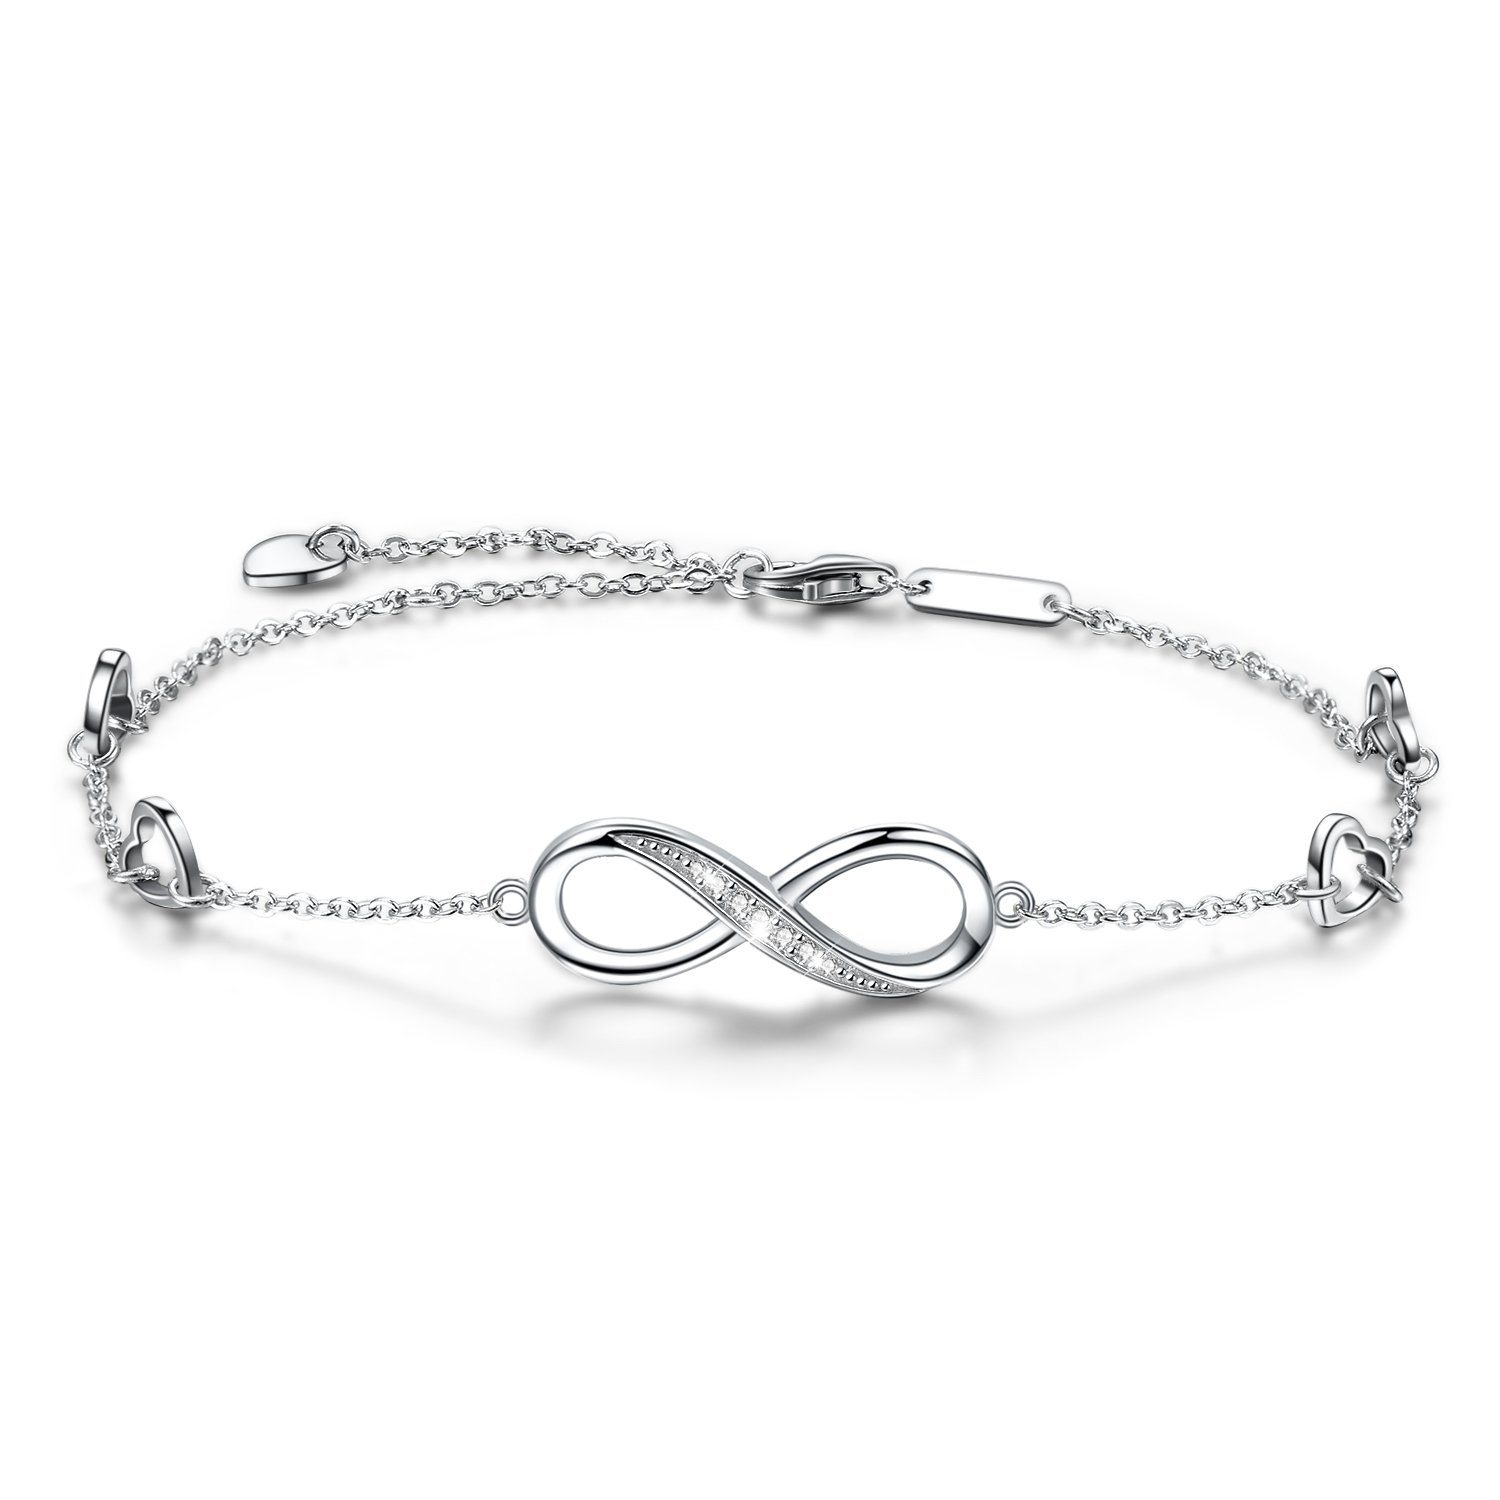 OneSight Infinity Ankle Bracelet for Women, 925 Sterling Silver Charm Adjustable Anklet, Large Bracelet (White-Gold-Plated-Sterling-Silver)